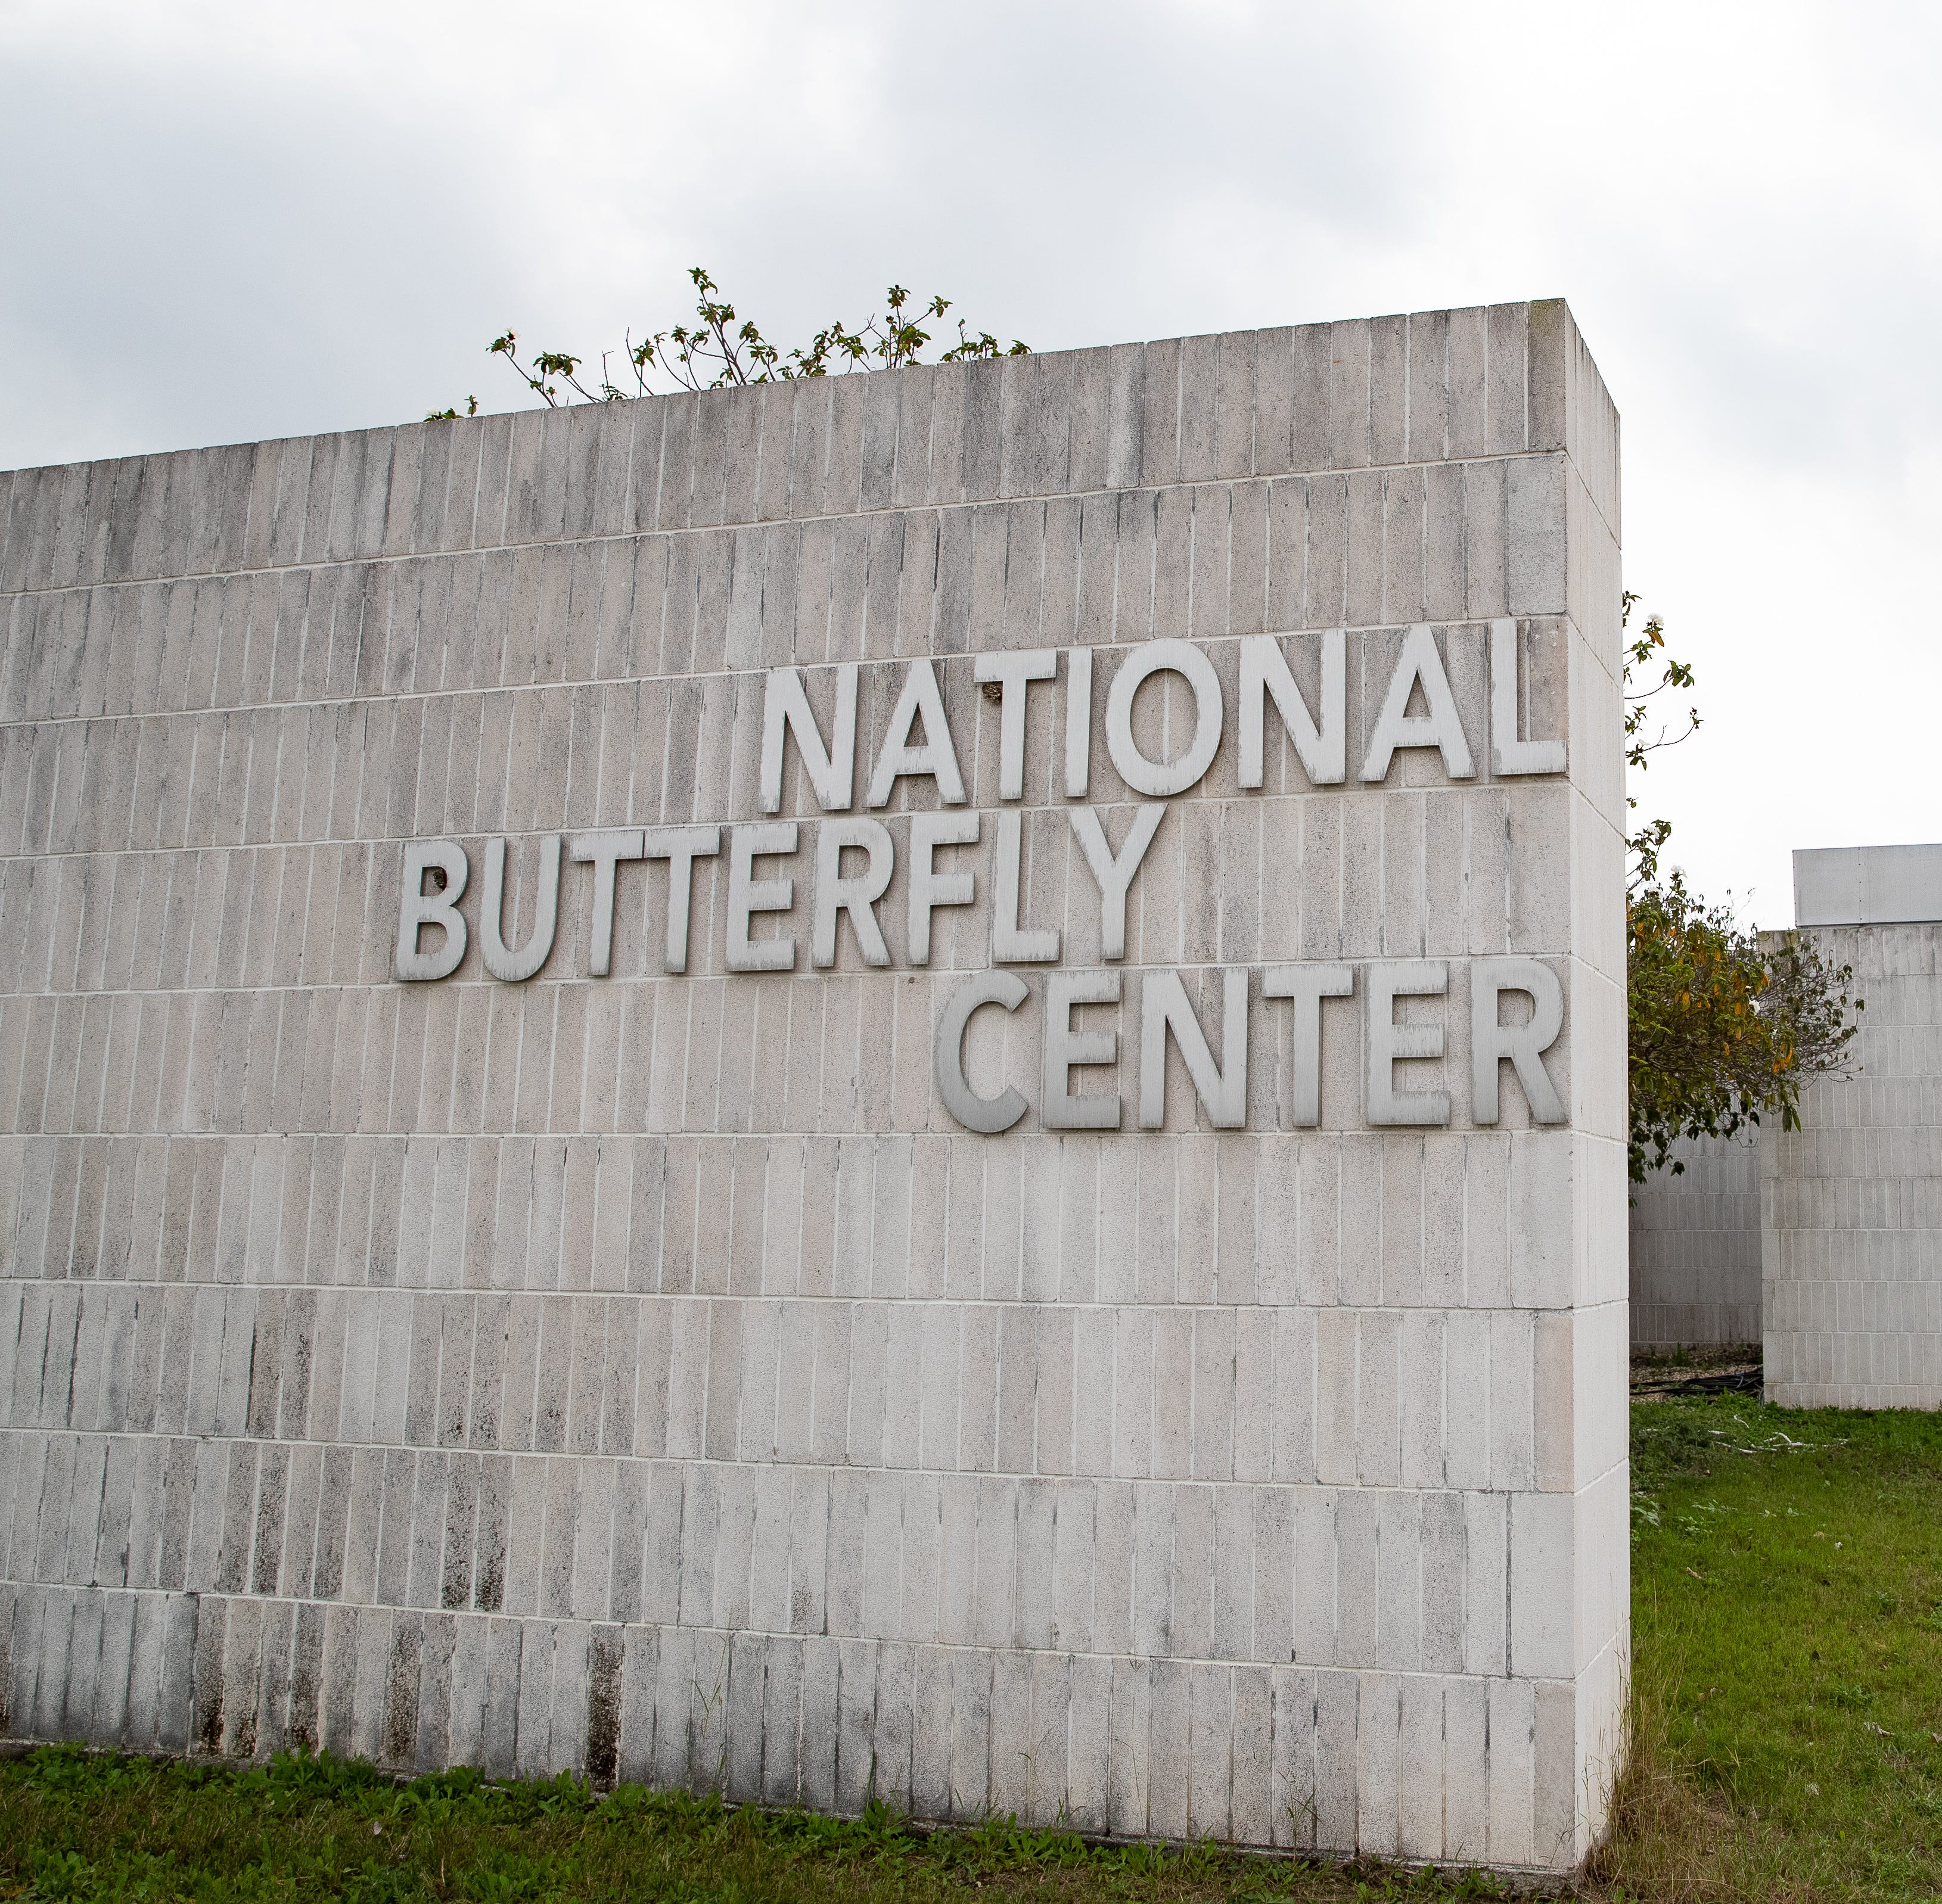 The National Butterfly Center in Mission, Texas on Wednesday, Feb. 6, 2019. The center will have about 70 percent of its property cut off by the proposed border wall along the levee in the area.